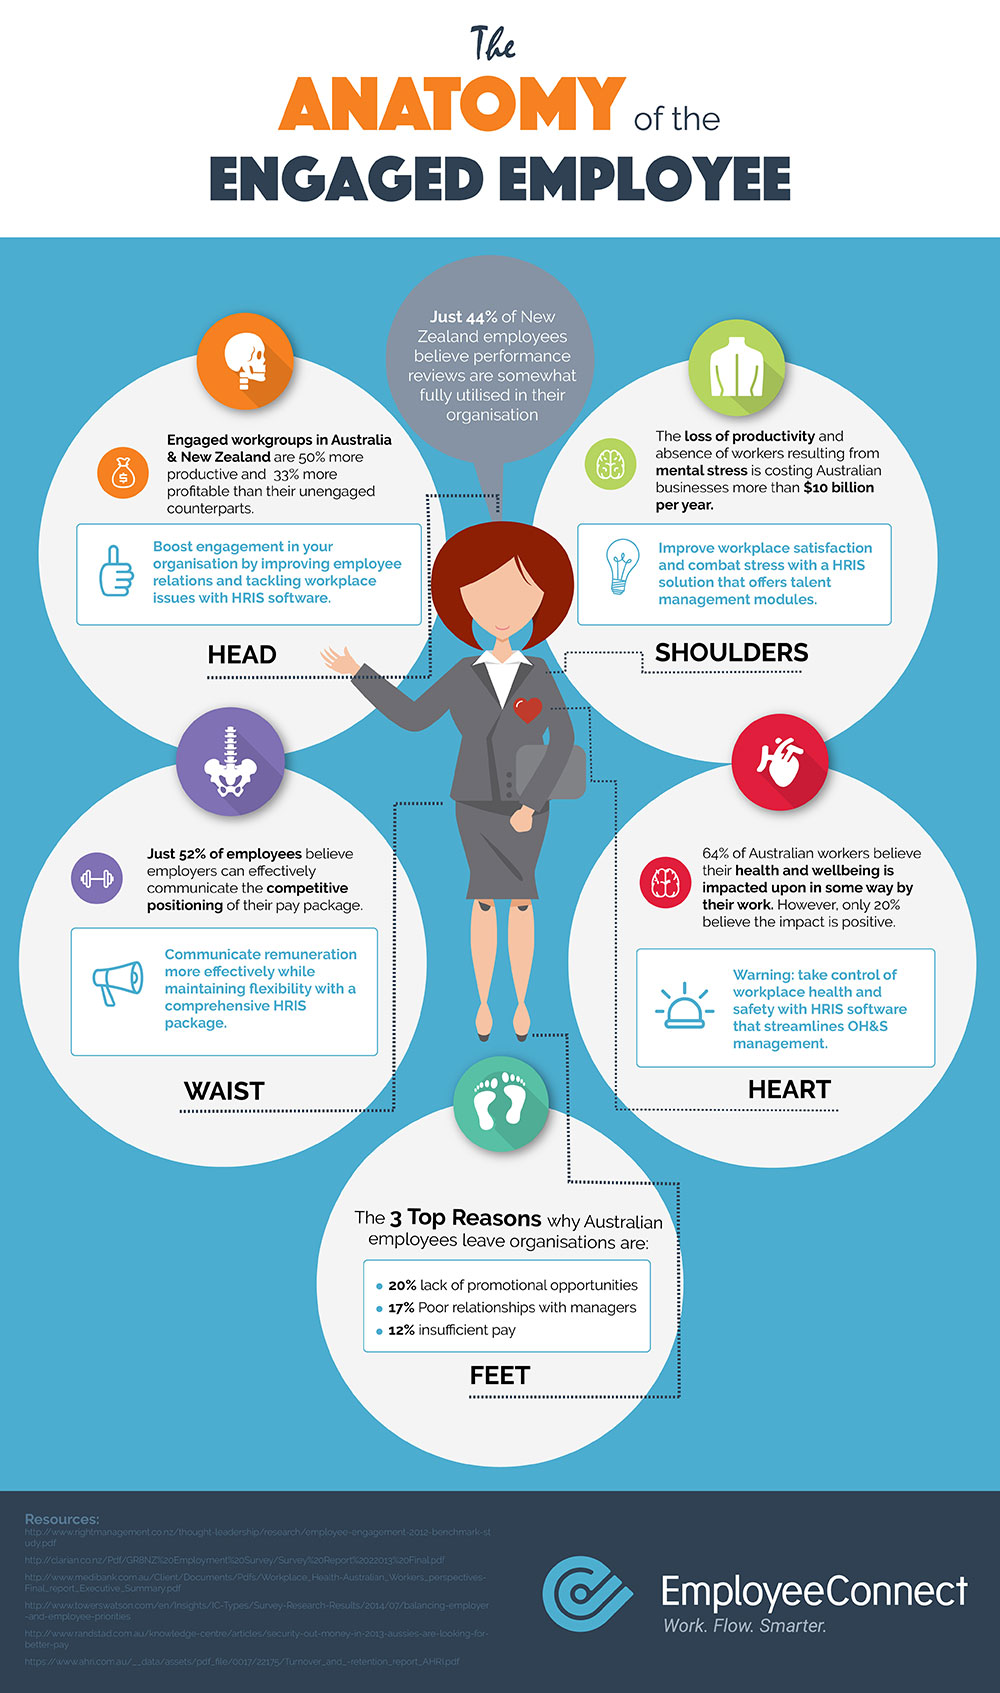 http://www.employeeconnect.com/wp-content/uploads/2016/06/Infographic-The-Anatomy-of-The-Engaged-Employee.jpg